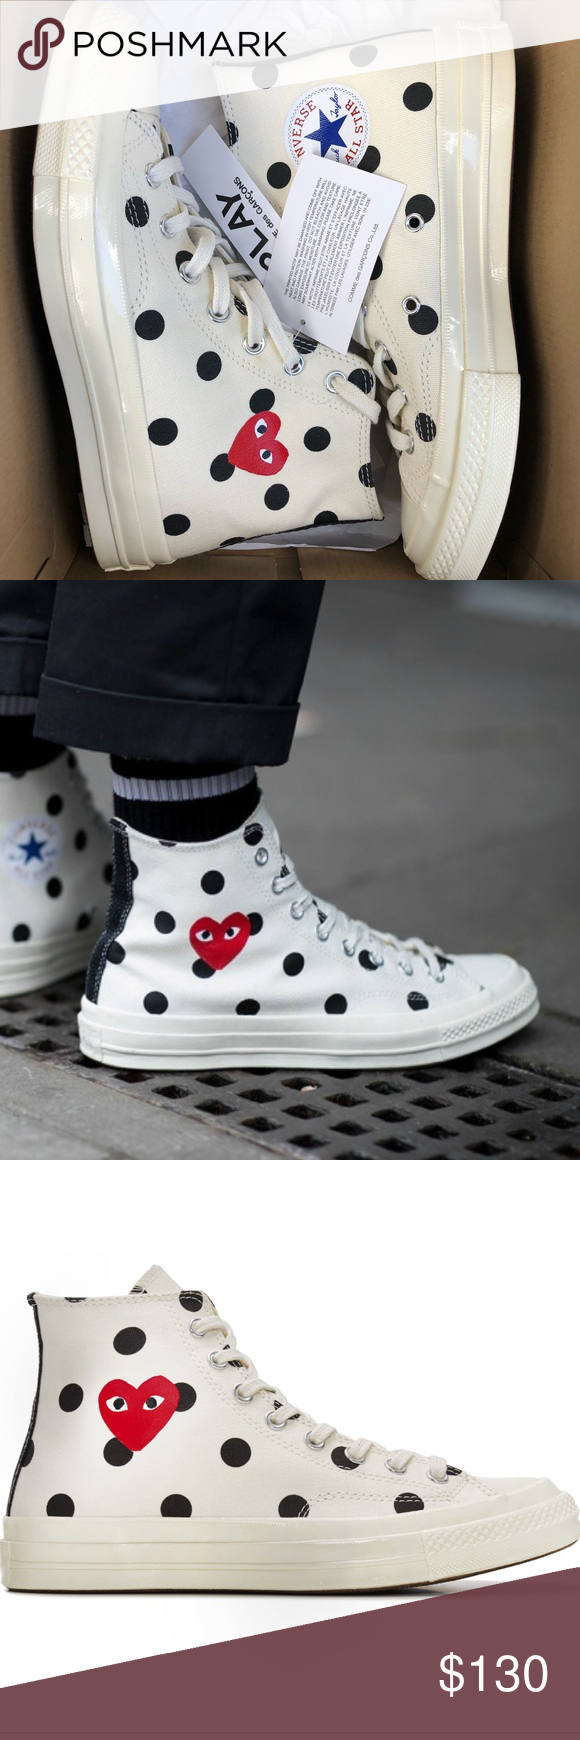 13799c003977 BRAND NEW CDG converse high tops Never been worn